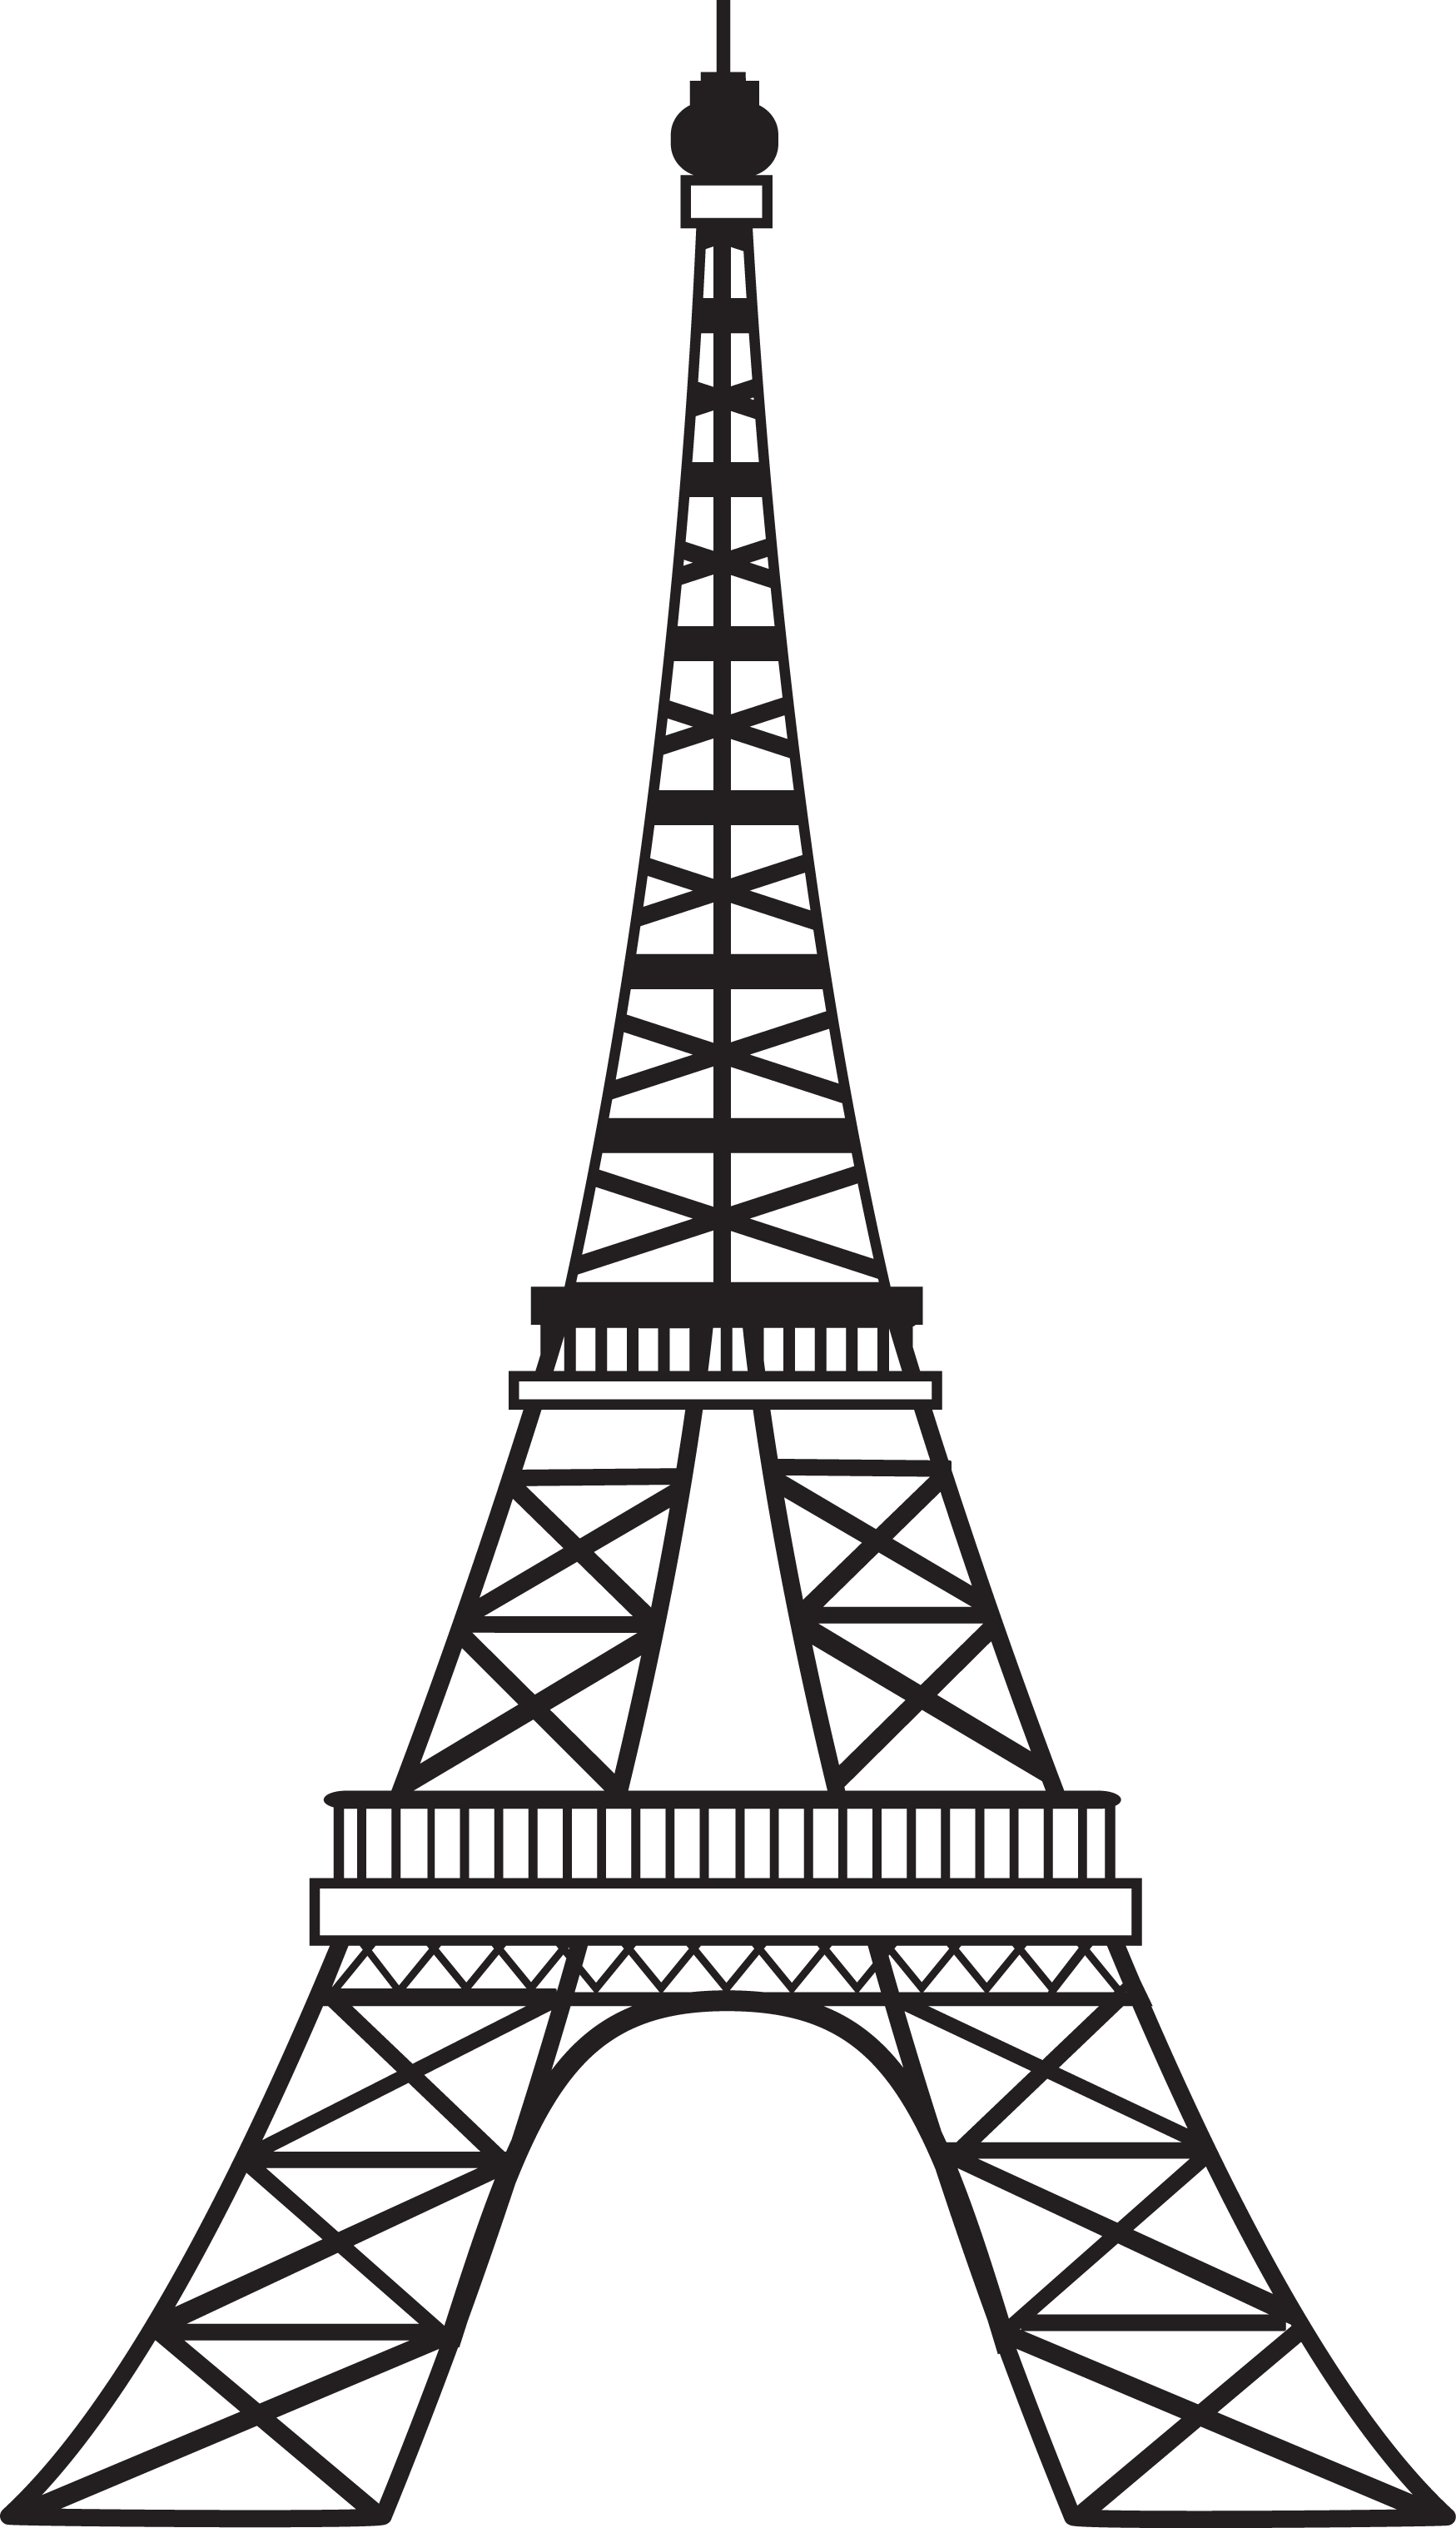 Download Eiffel Tower Free Png Image Hq Png Image Freepngimg